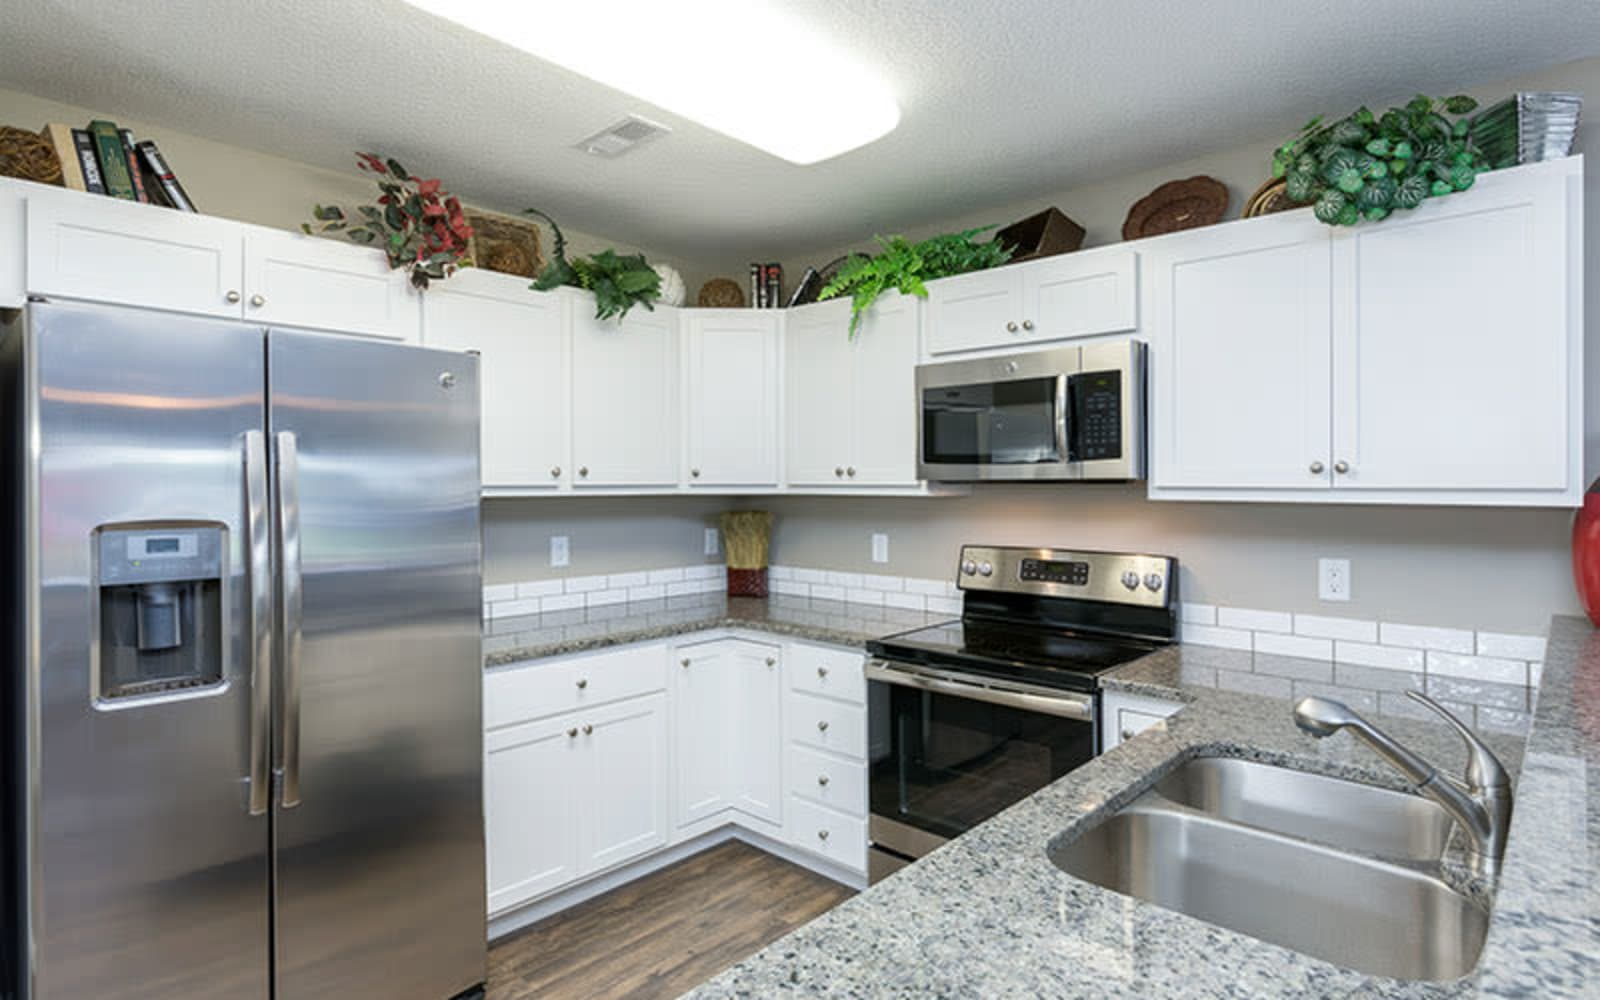 An apartment kitchen with white cabinets at The Landing of Clinton in Clinton, Iowa